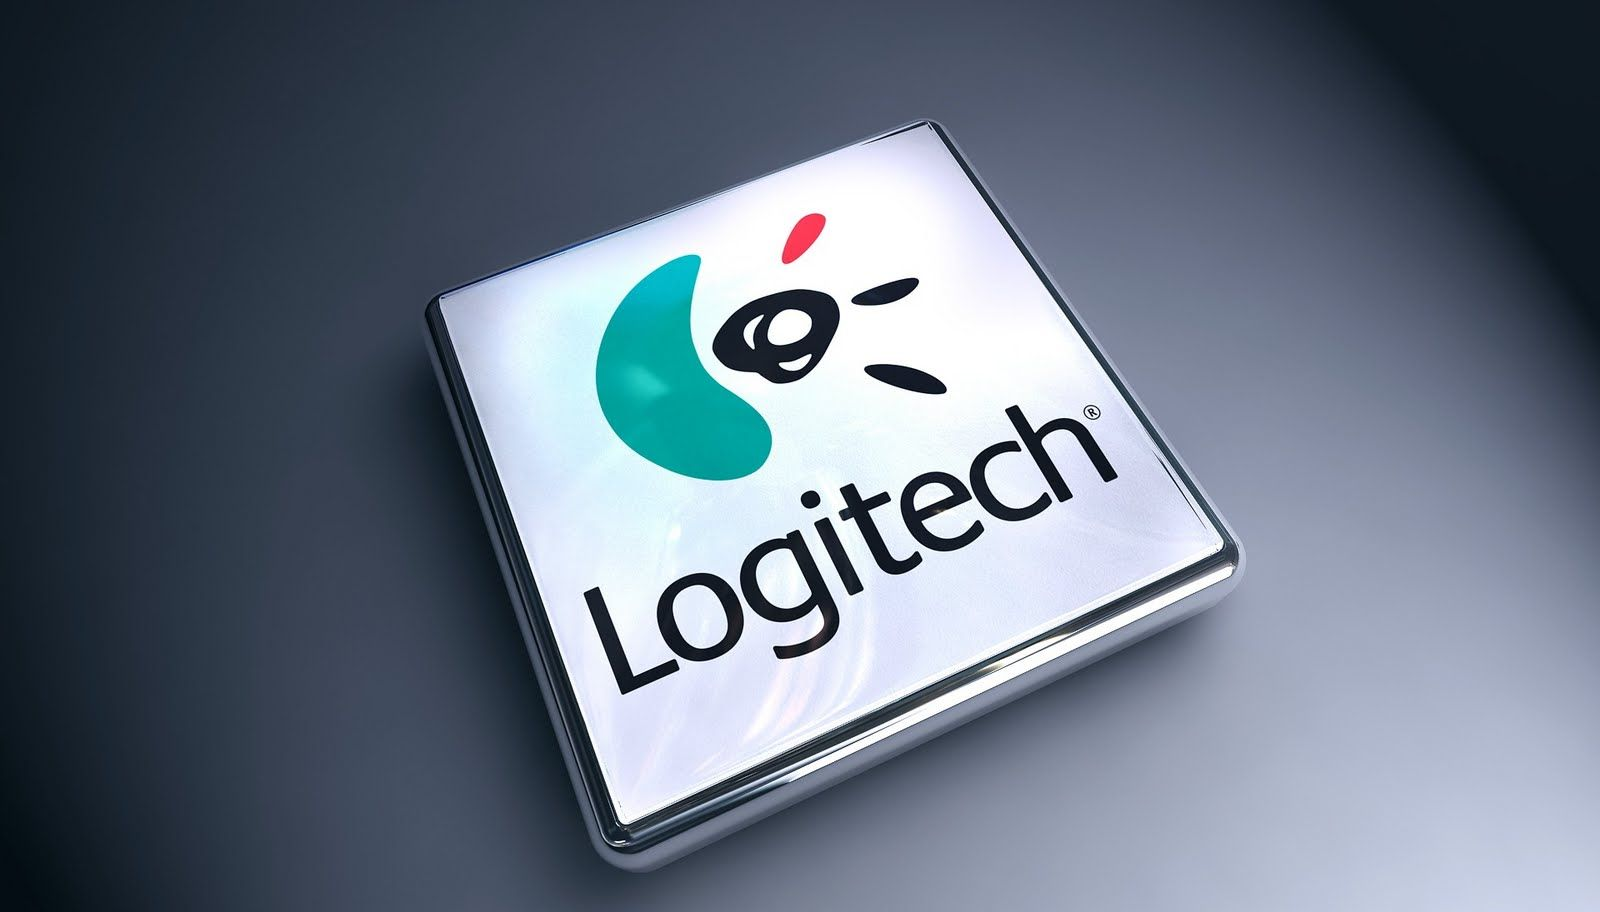 logitech animated wallpaper